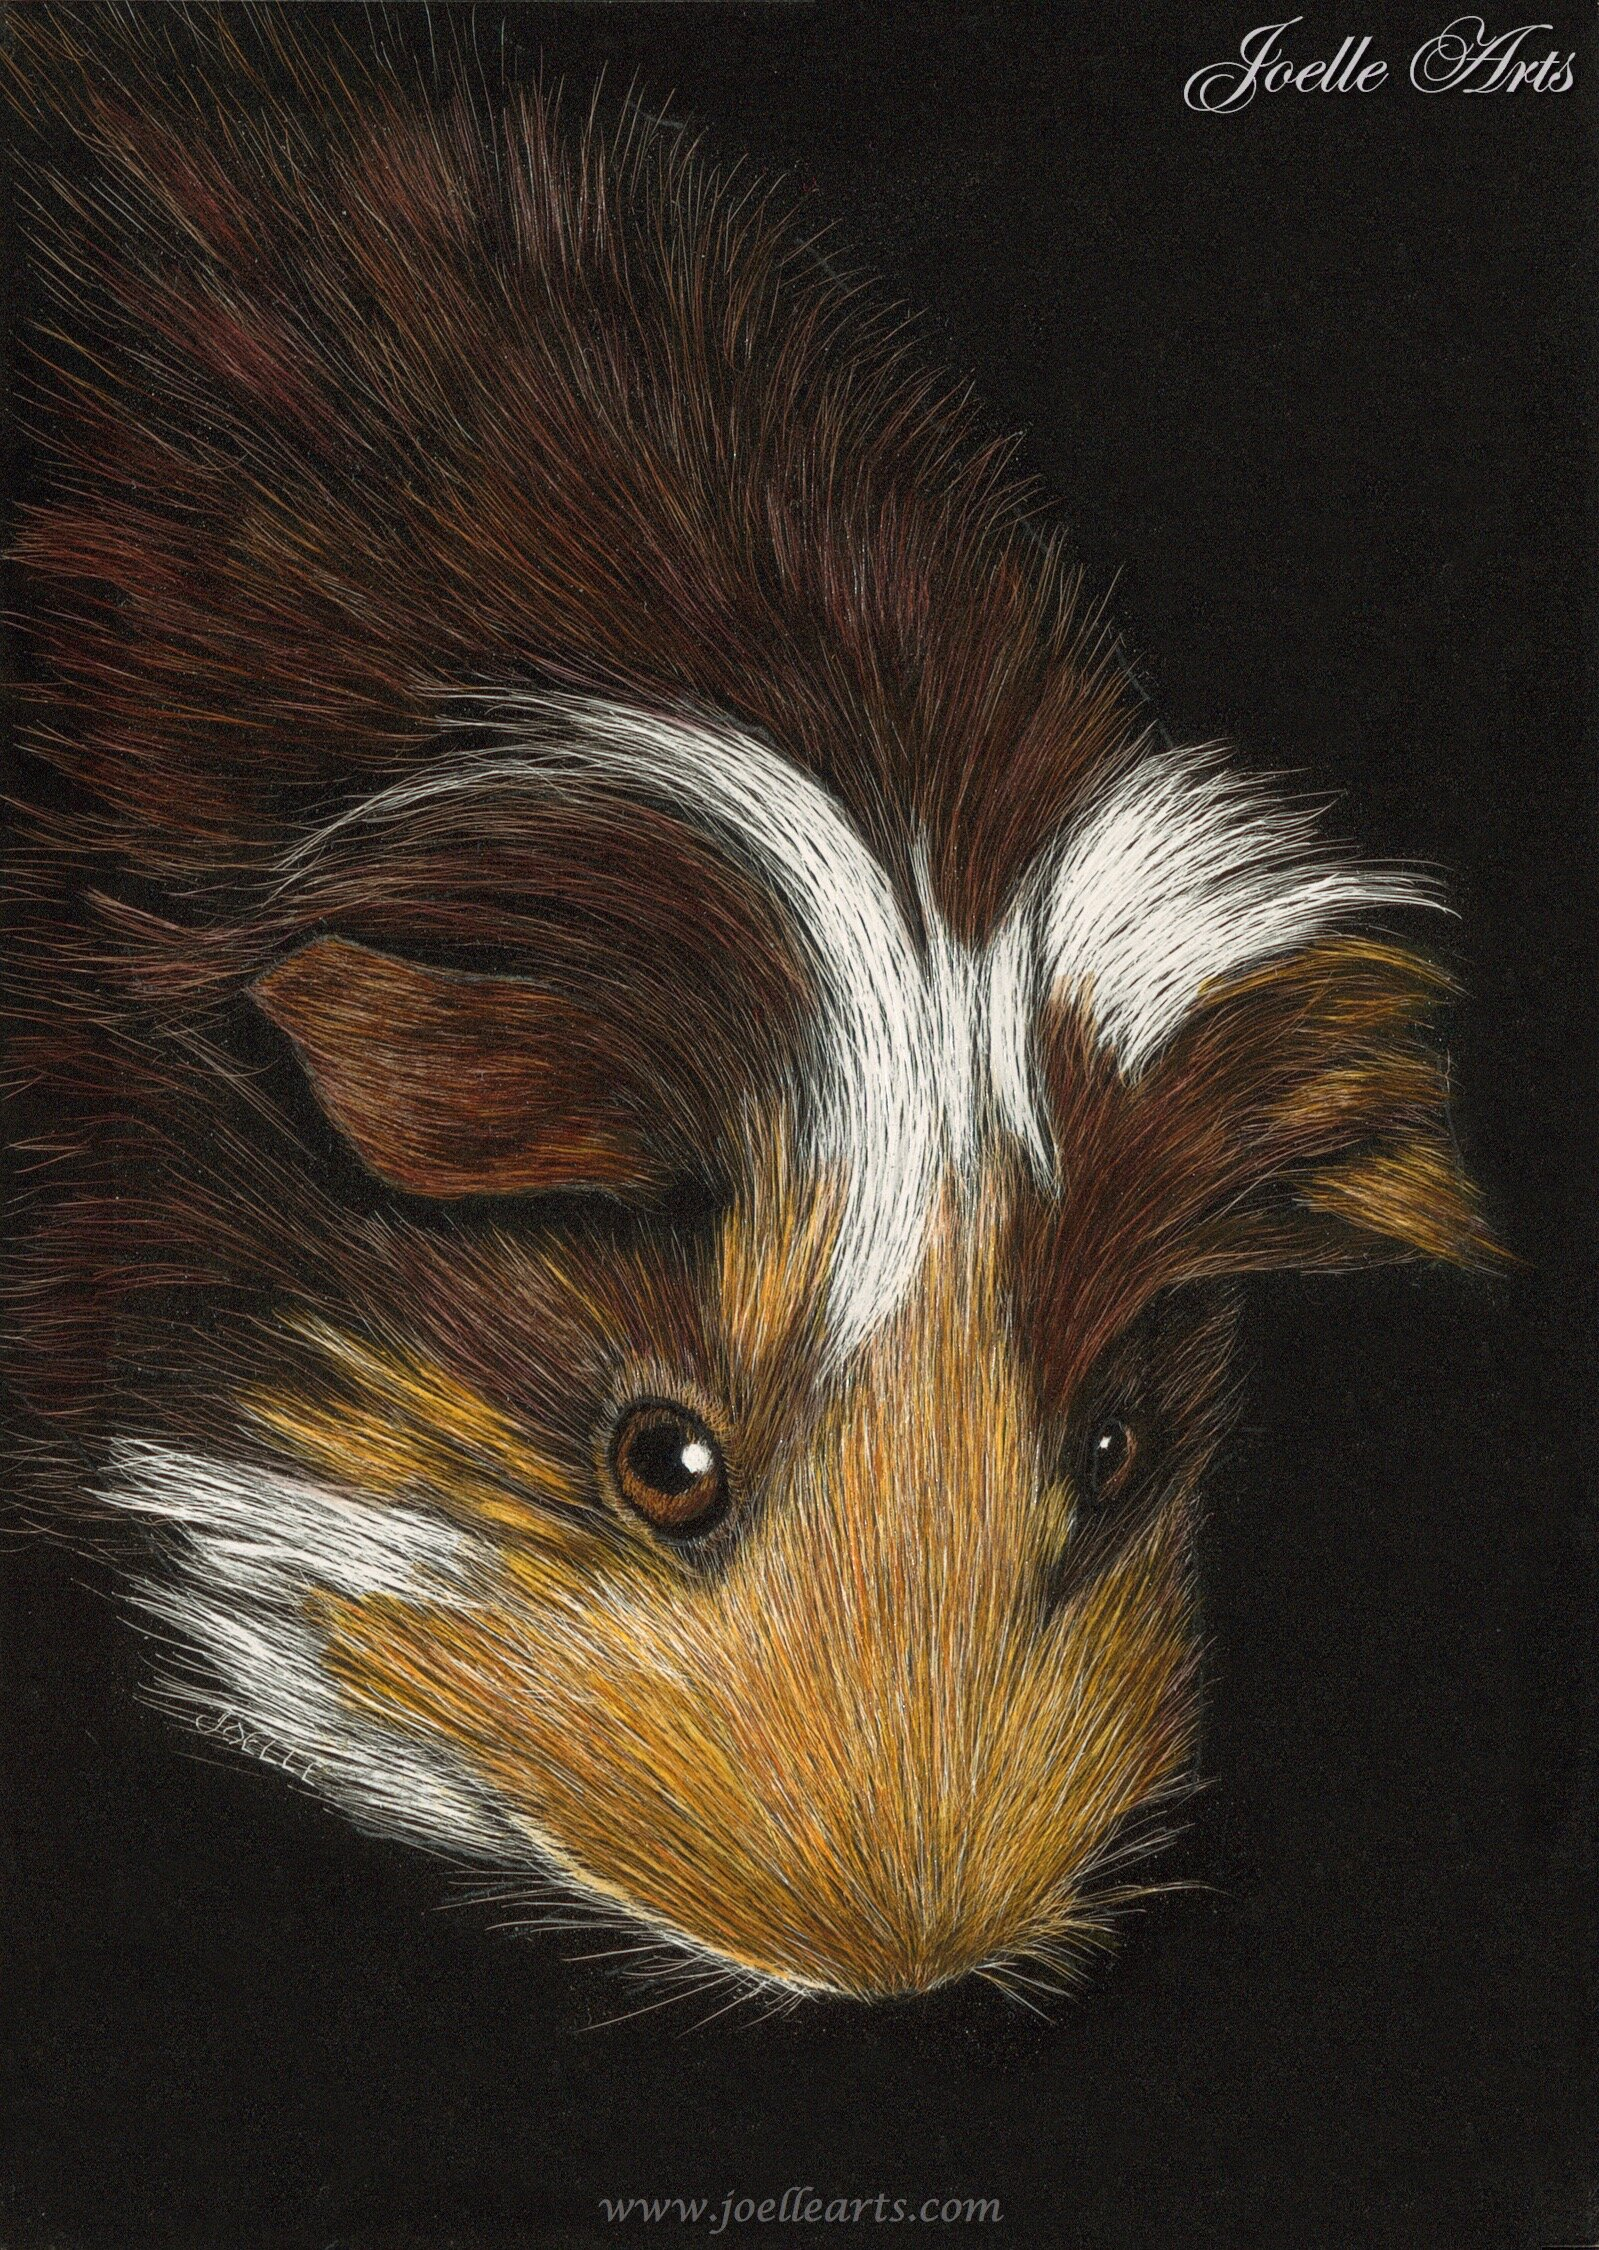 """Miley"" The Guinea Pig"